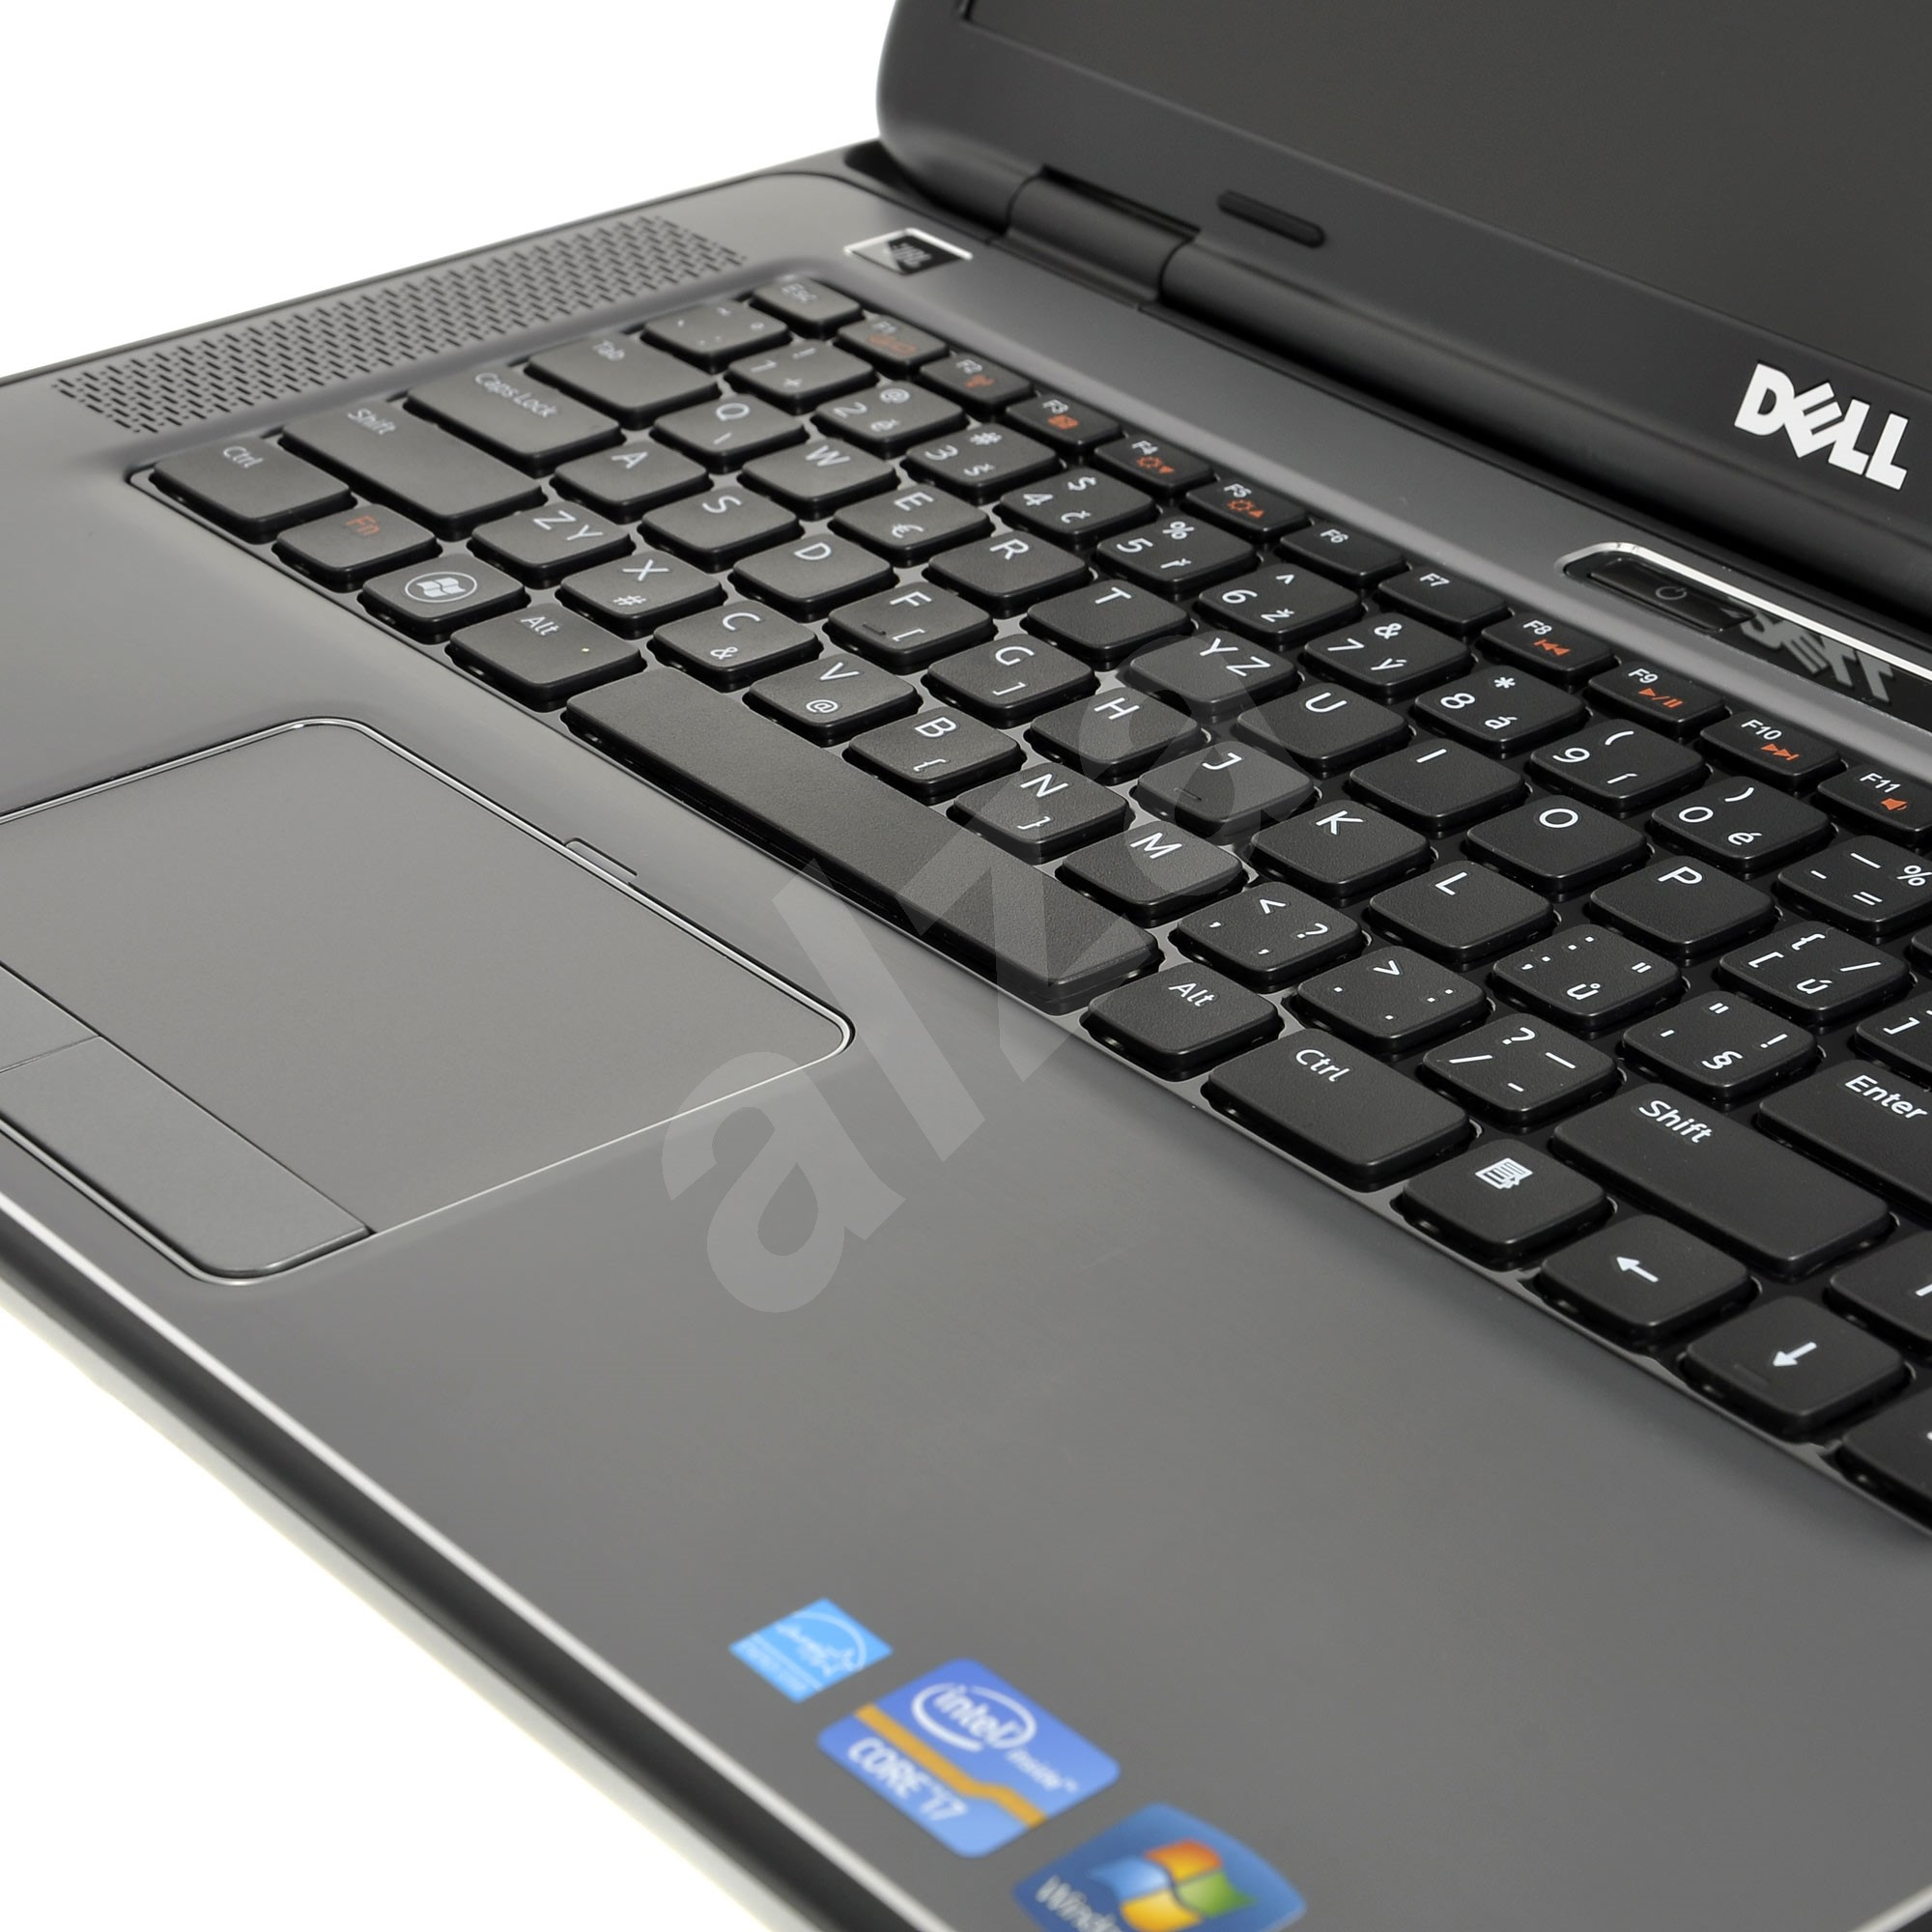 Dell Motherboard Diagram besides Dell Xps 8700 Front Diagram further Dell Dimension 8400 Wiring Diagram in addition Dell Experian 570 Wiring Diagram also Dell Xps 8500 Rear Panel Diagram. on dell xps 8300 manual